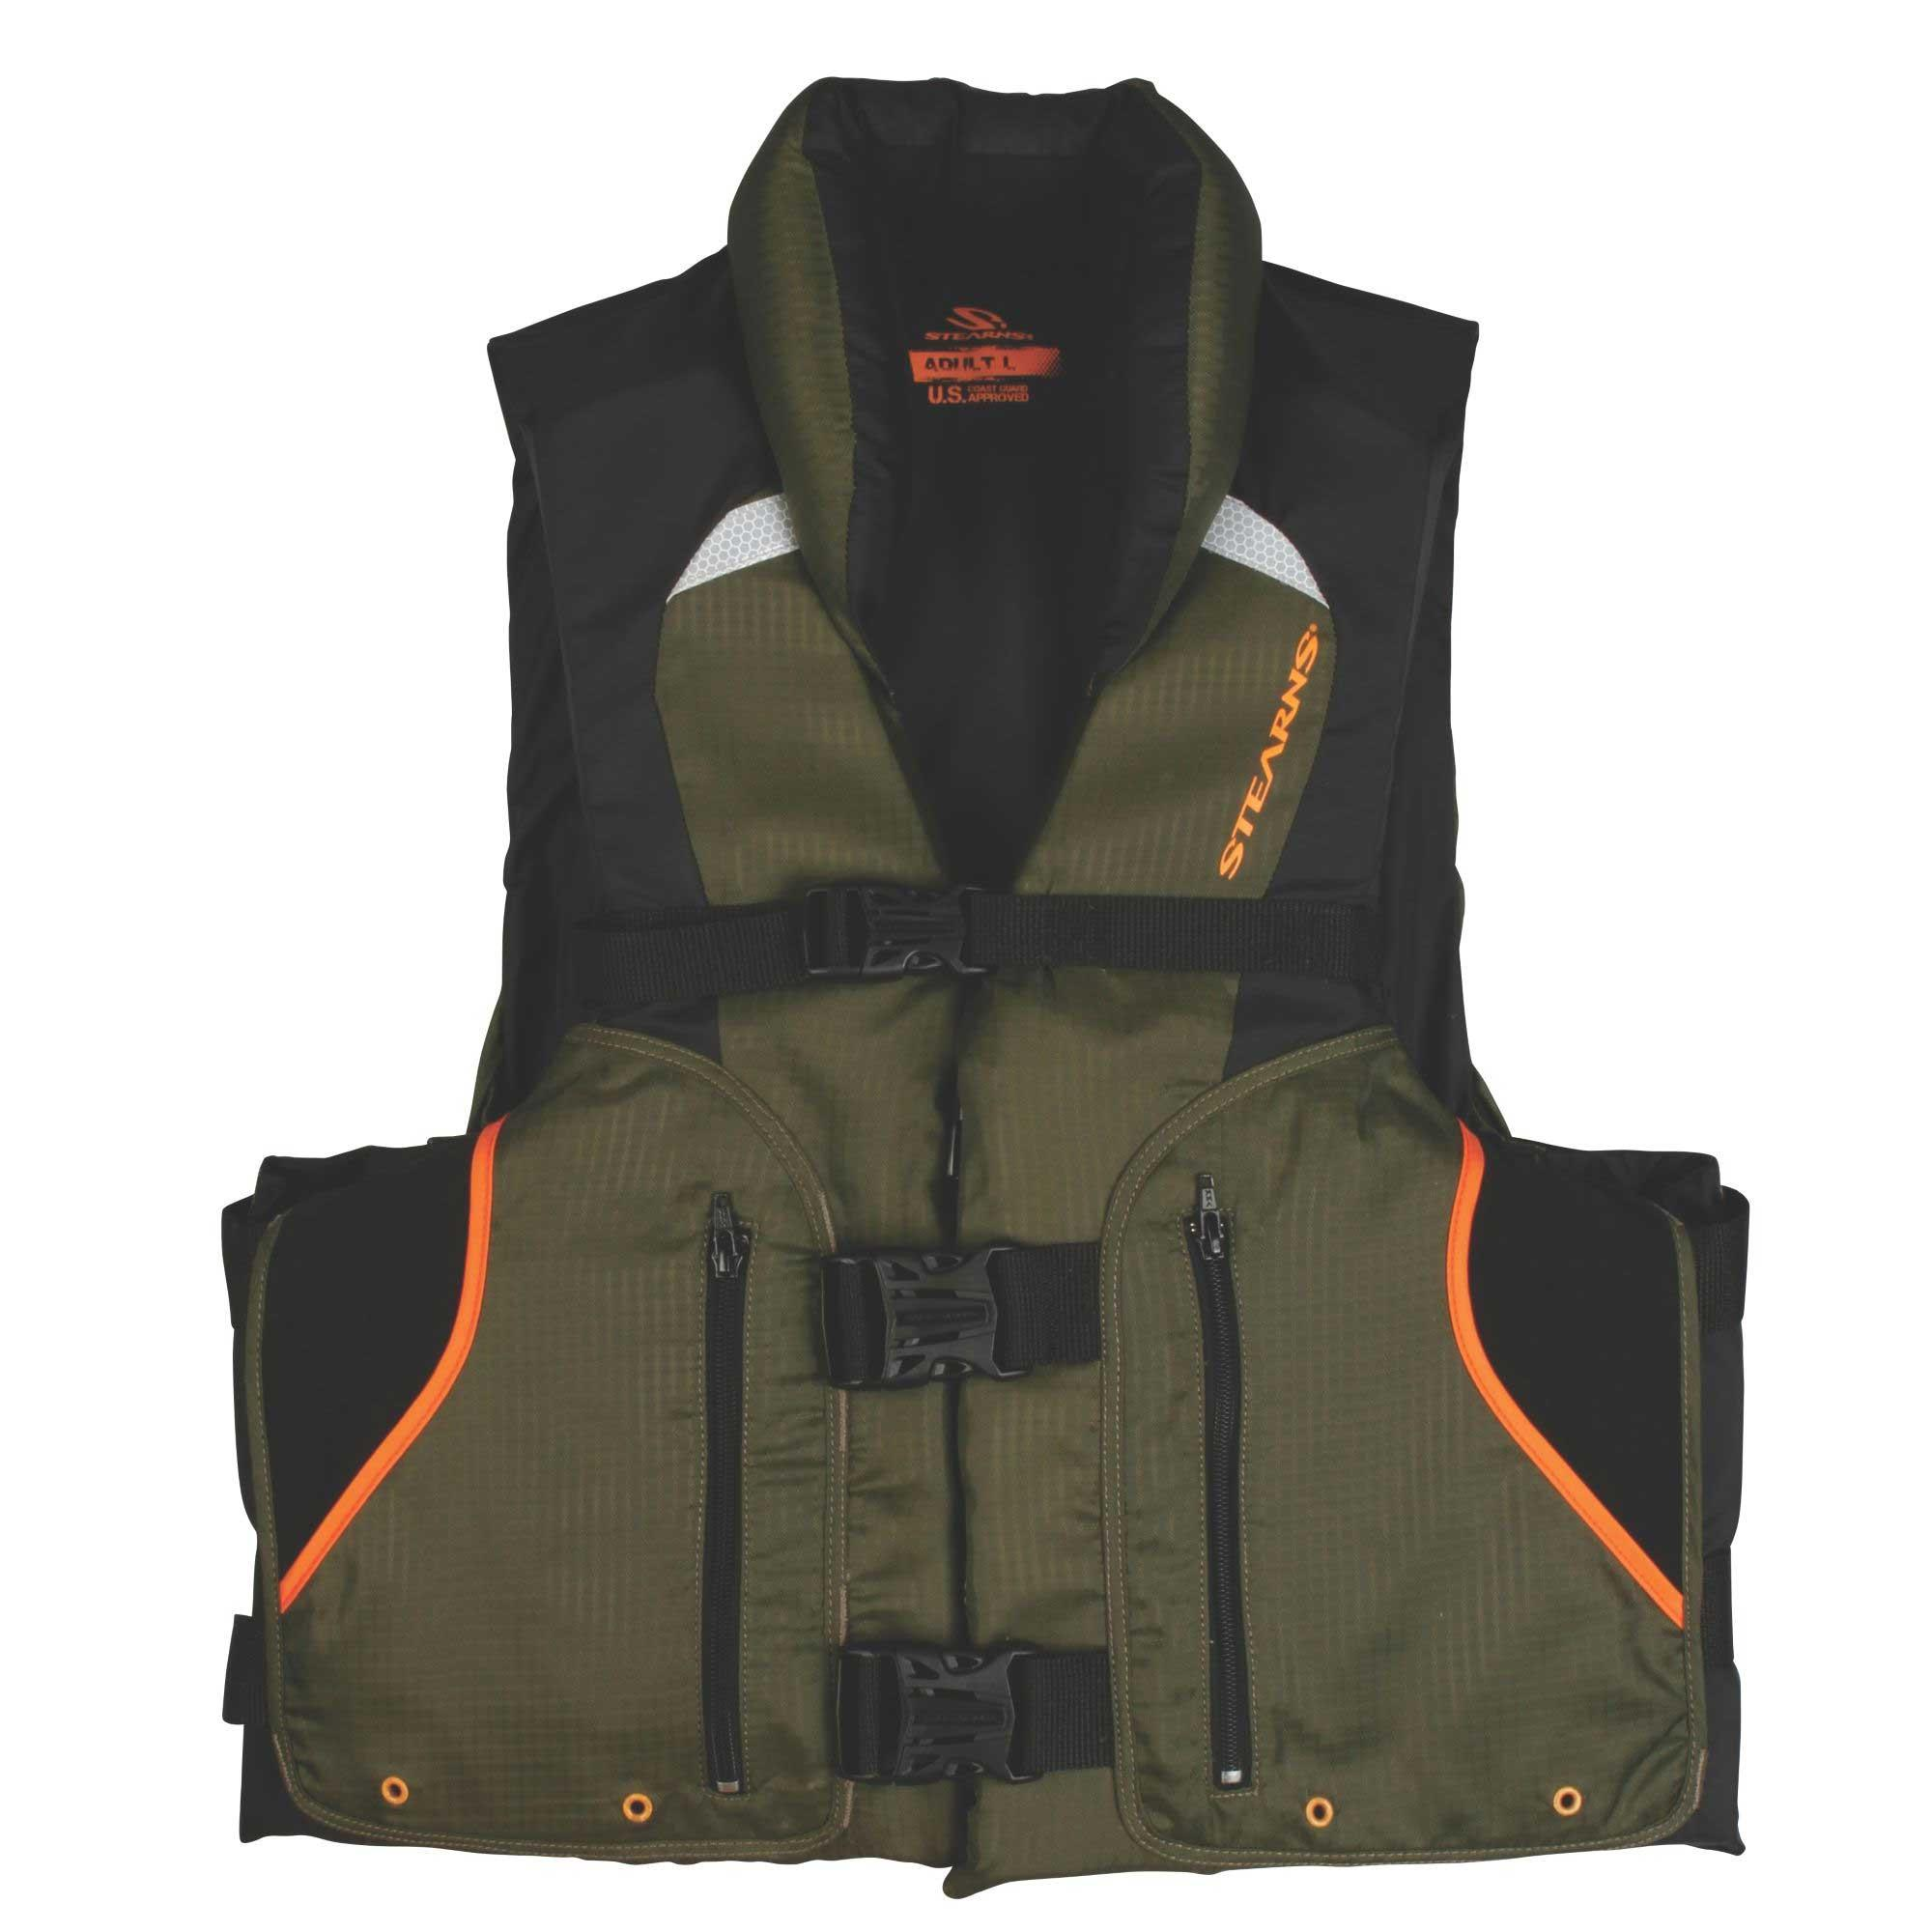 Stearns Competitor Series Fishing Vest_1.jpg